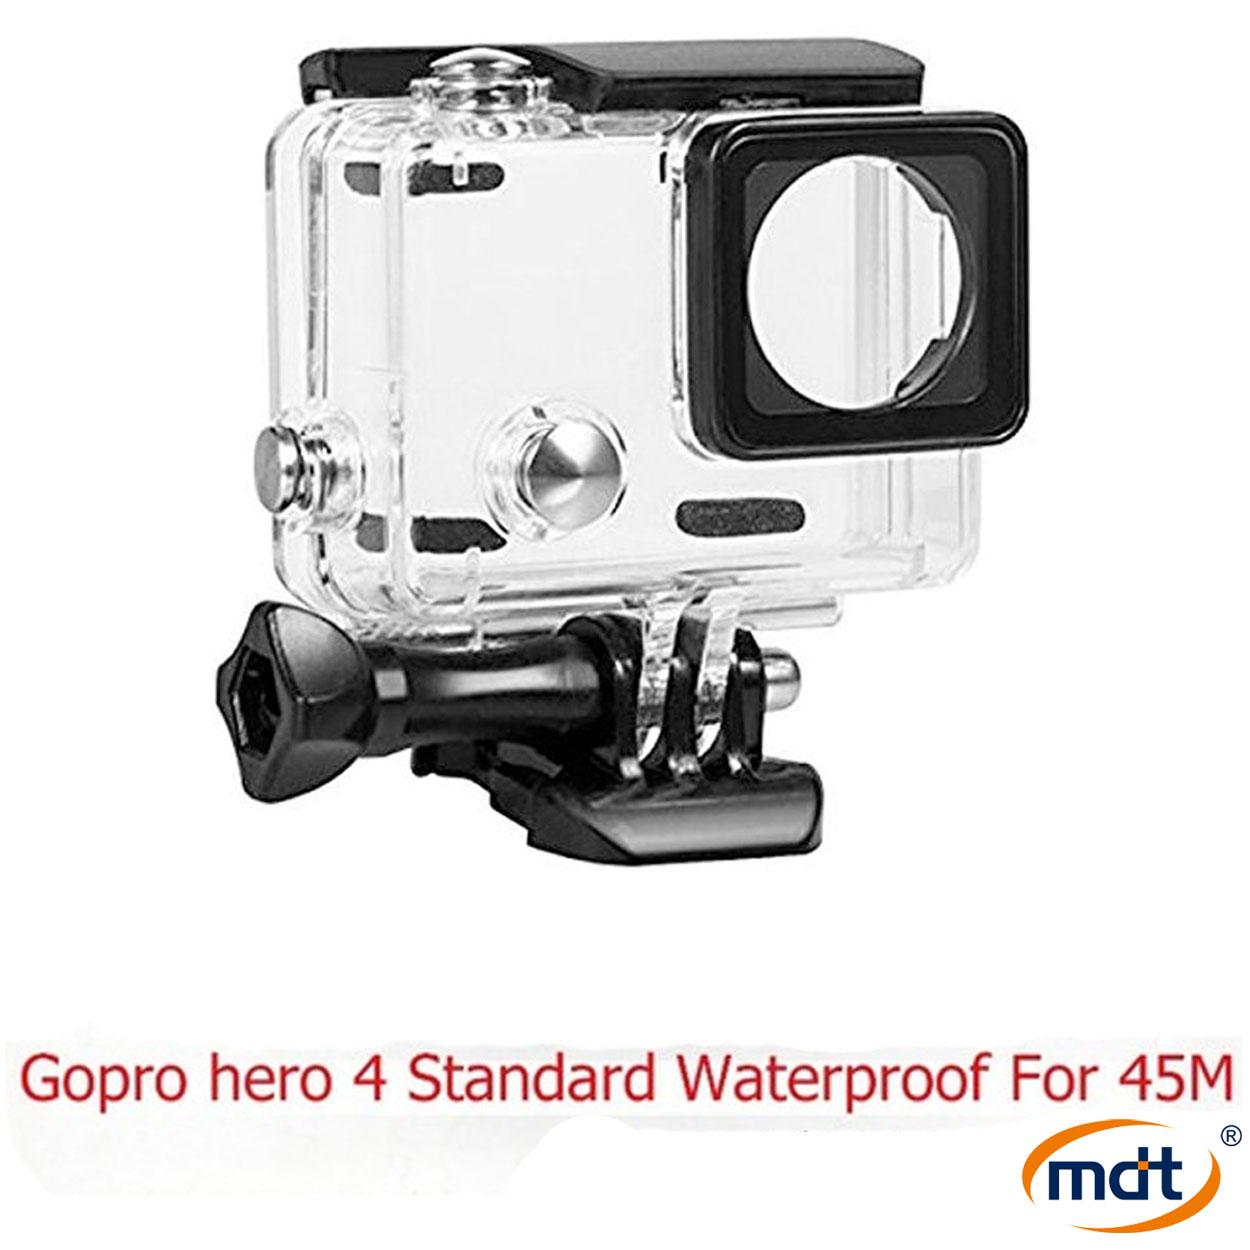 Accessories For Gopro Philippines Price List Floating Hand Grip Bobber Xiaomi Yi And Hero 2 3 High Quality 30m Waterproof Case Housing